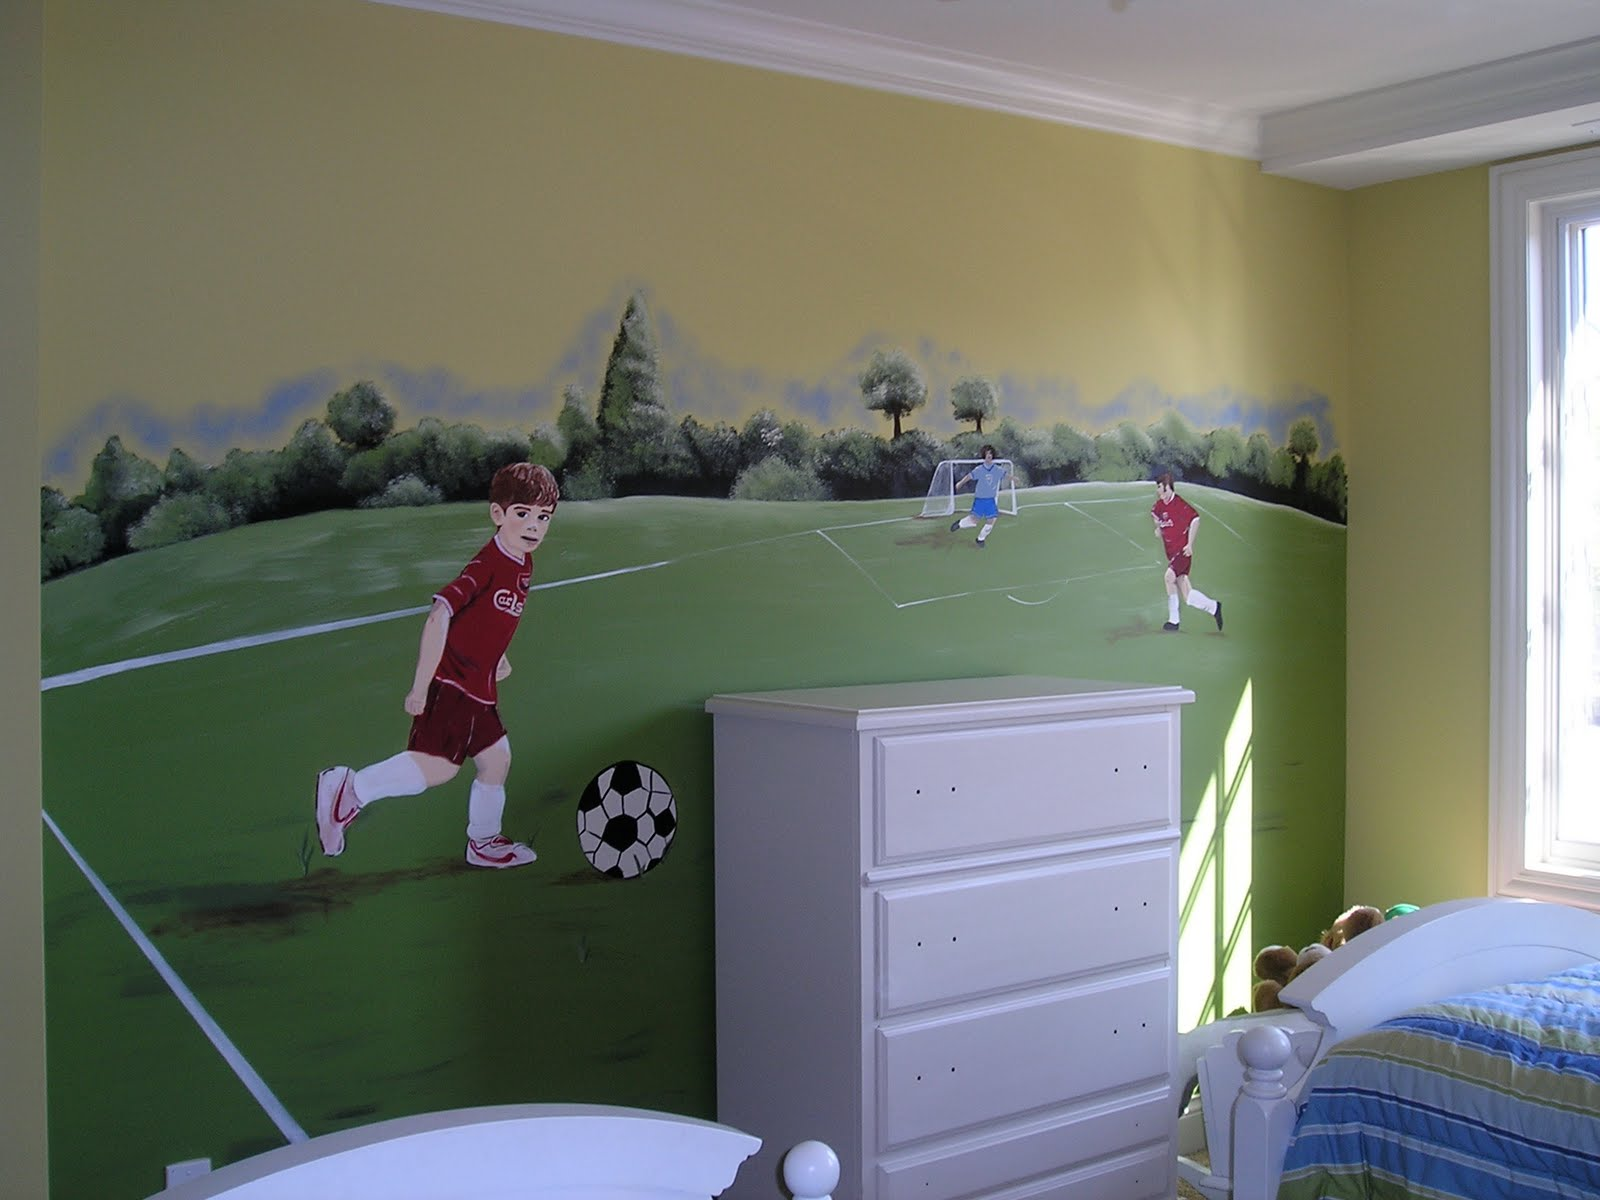 Jennifer d rizzo designs boy 39 s room murals - Soccer murals for bedrooms ...